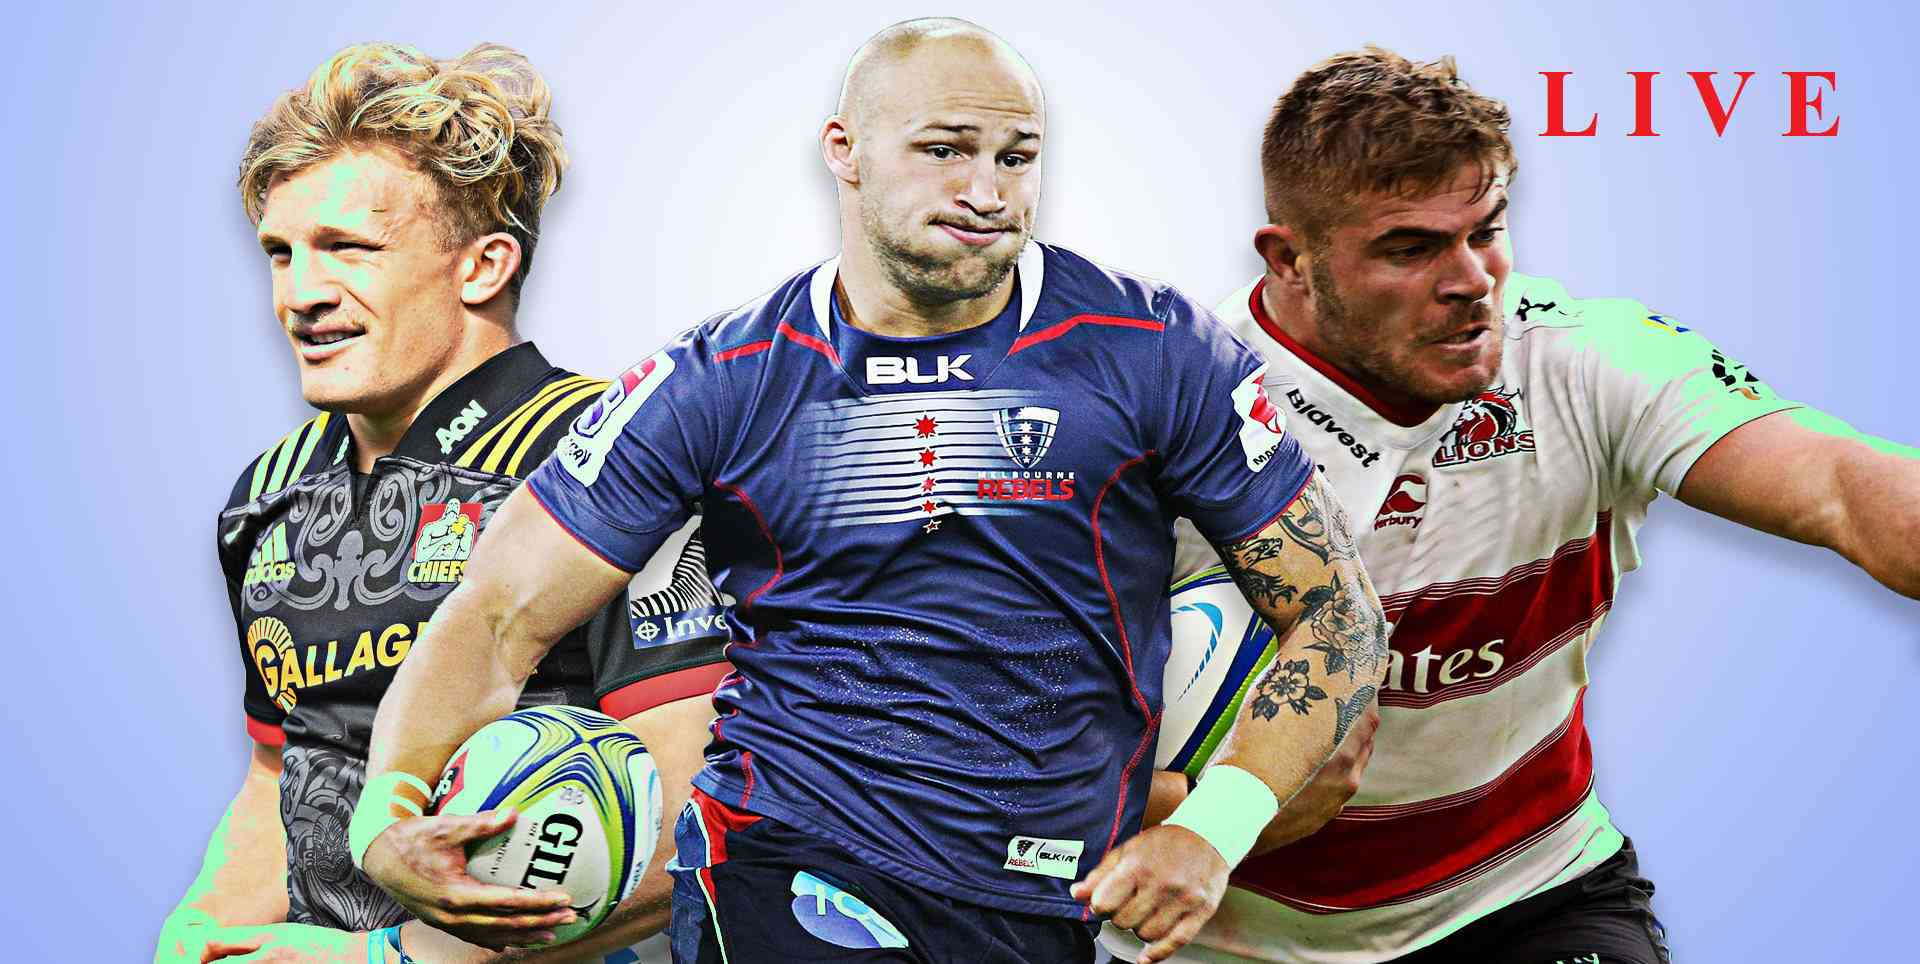 connacht-vs-ulster-rugby-live